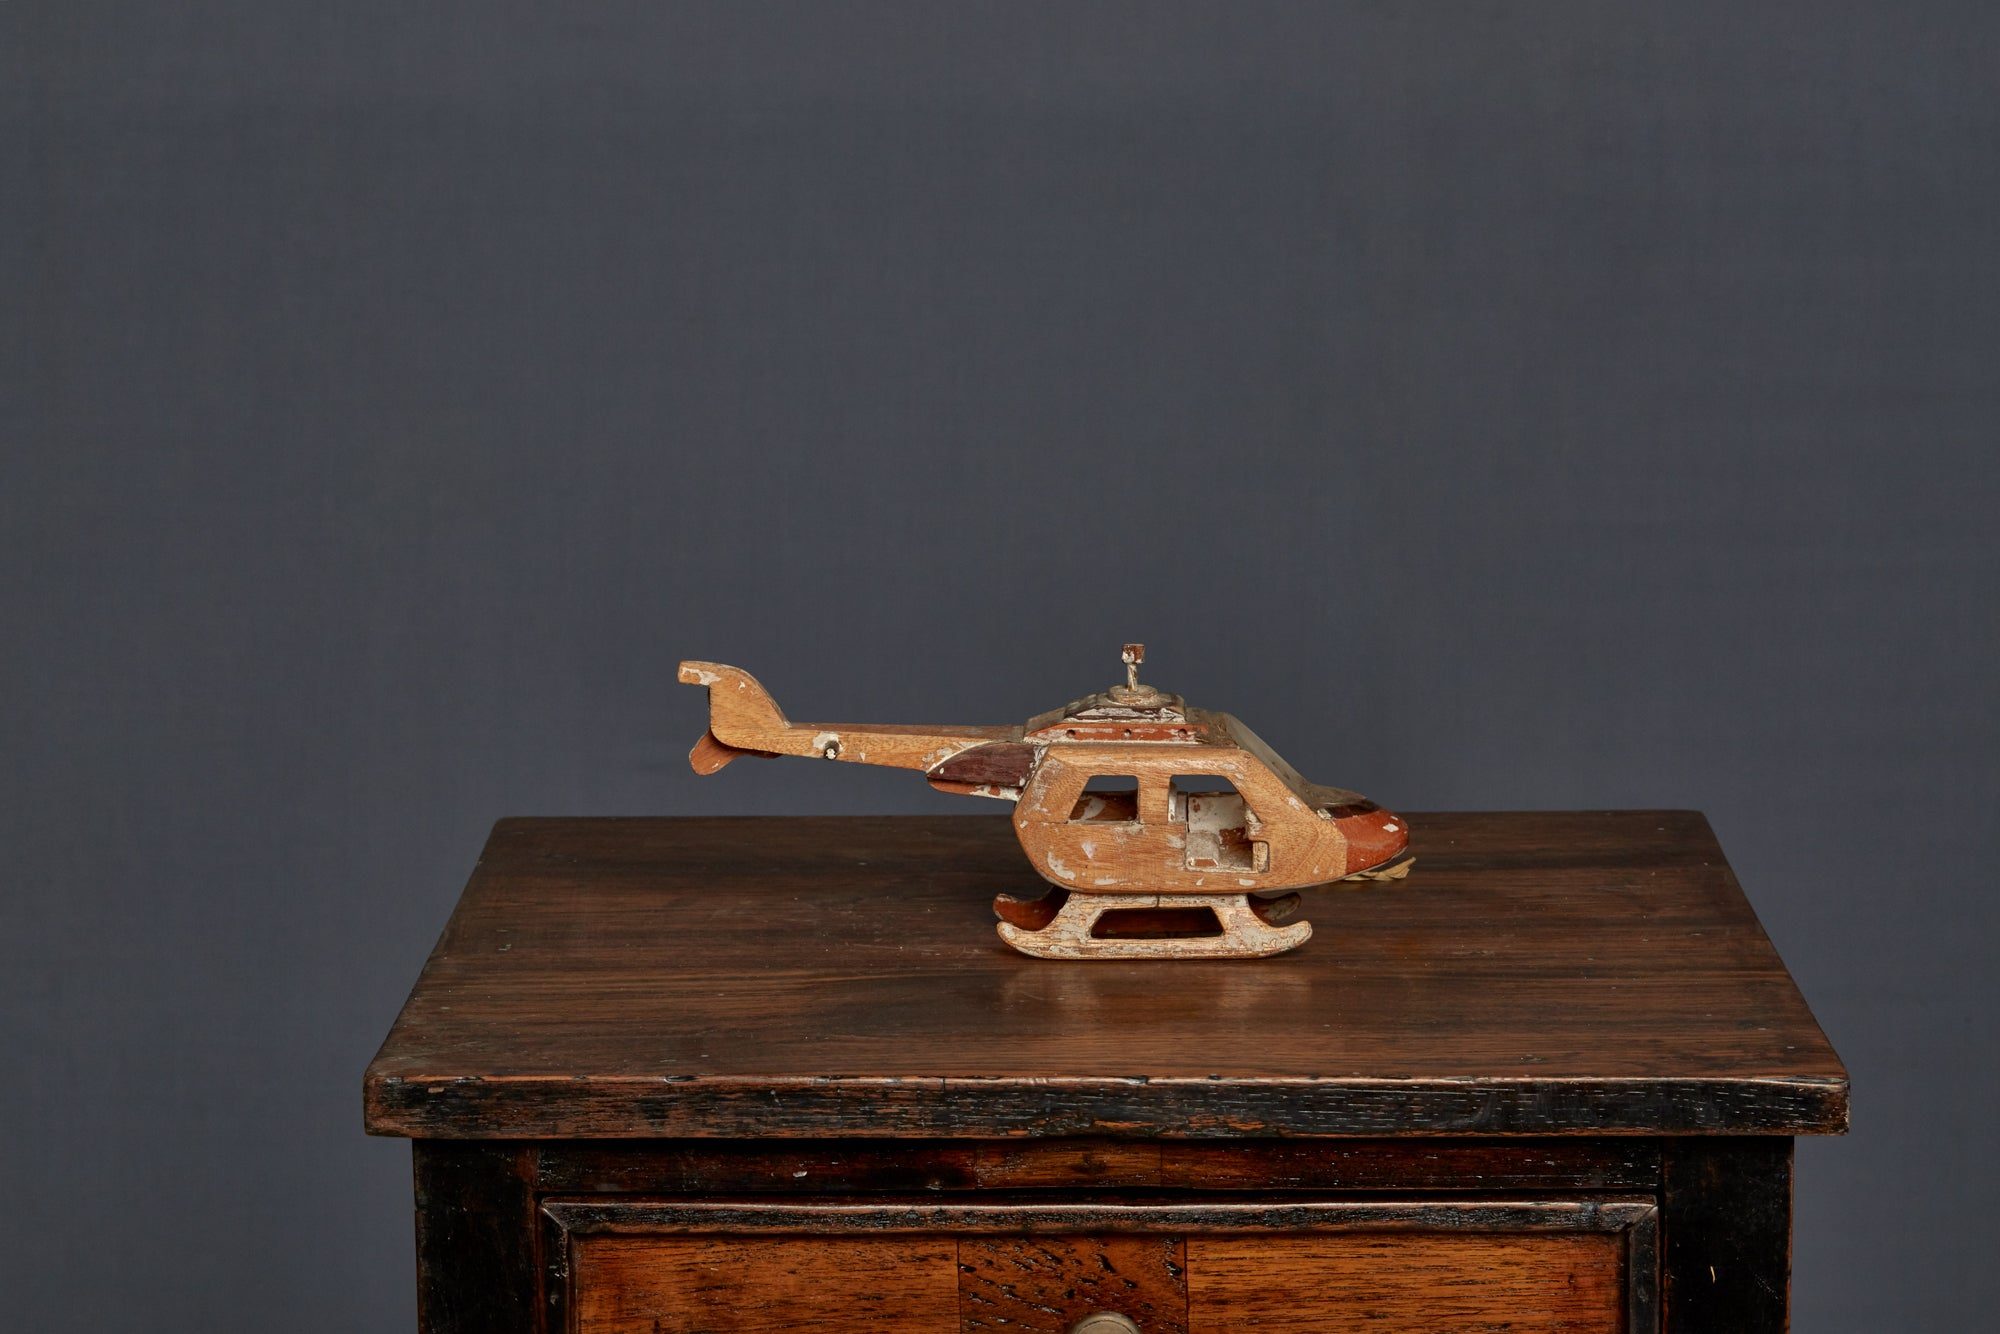 Toy Wooden Helicopter from Java